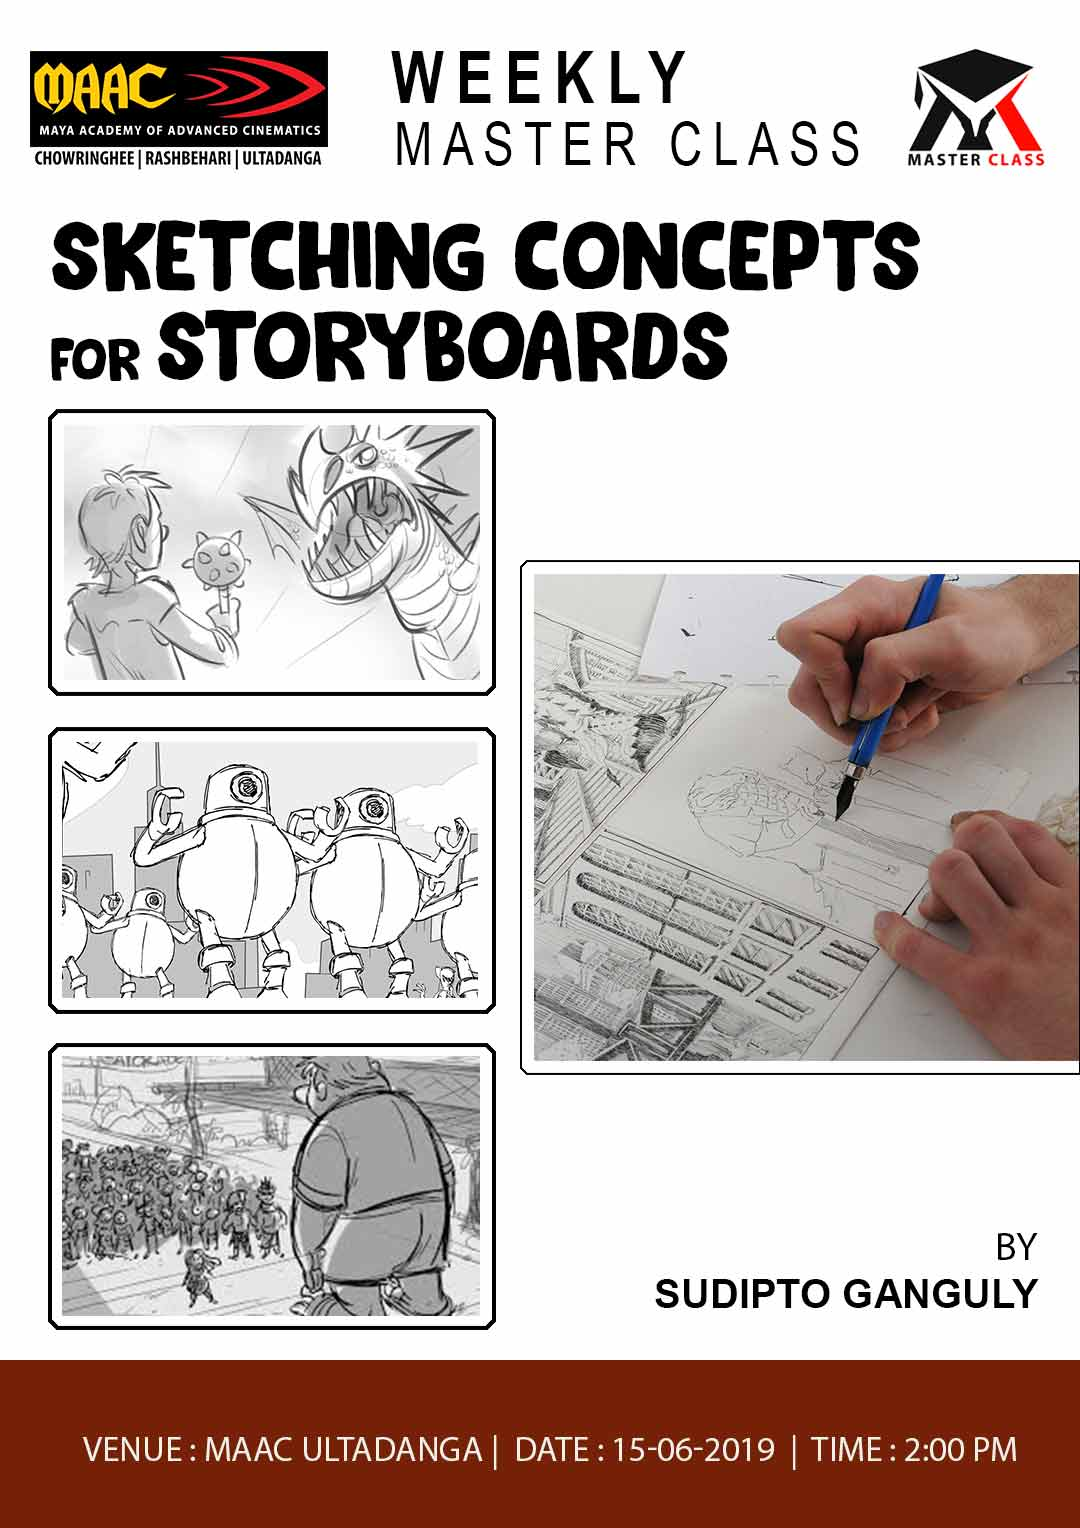 Weekly Master Class on Sketching Concepts for Story Boards